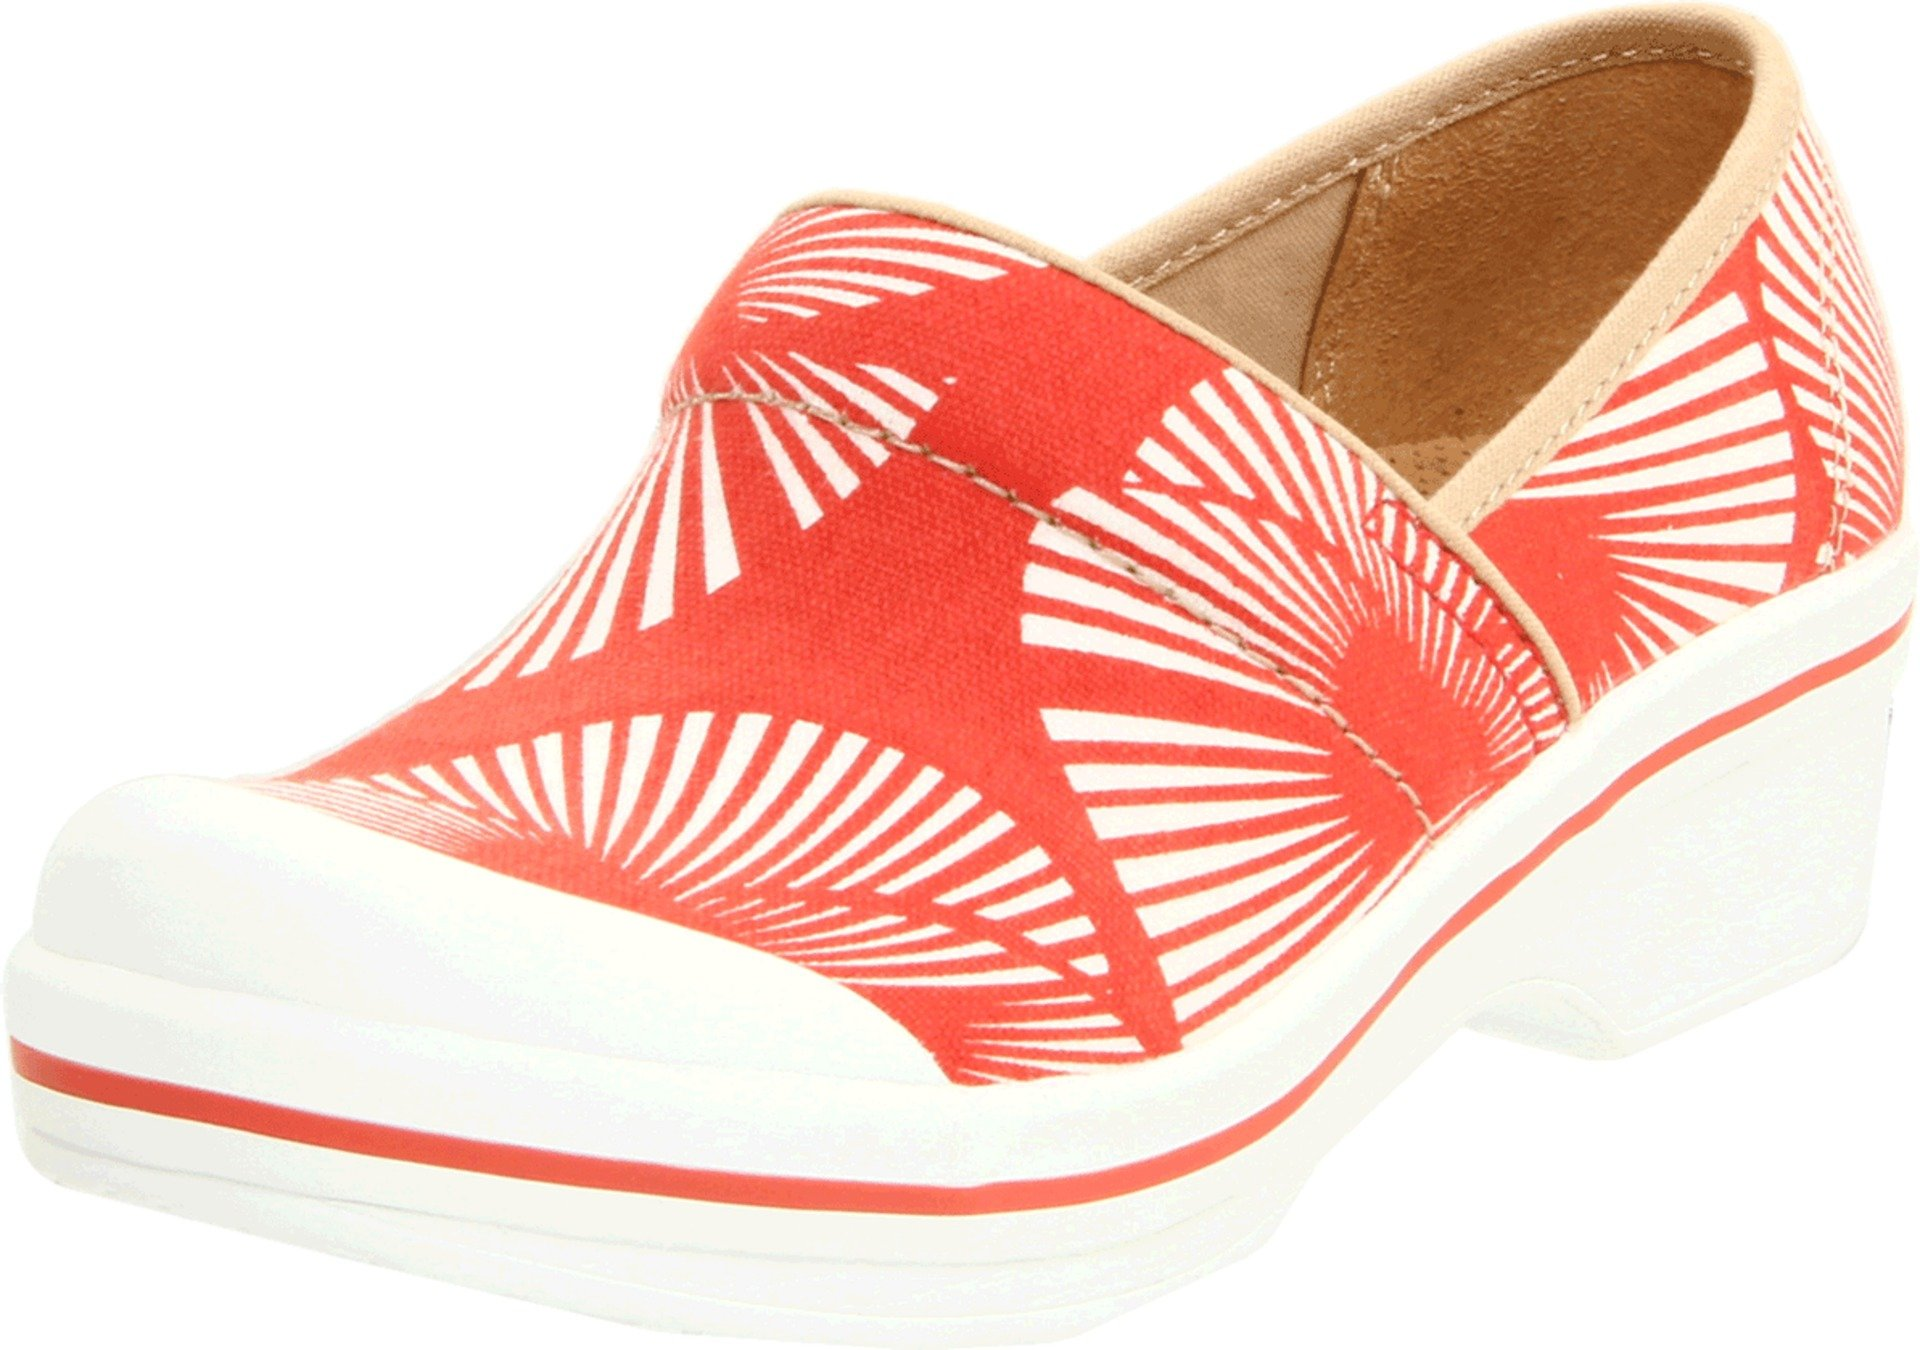 Dansko Women's Volley Clog,Red Palm Frond,36 EU/5.5-6 M US